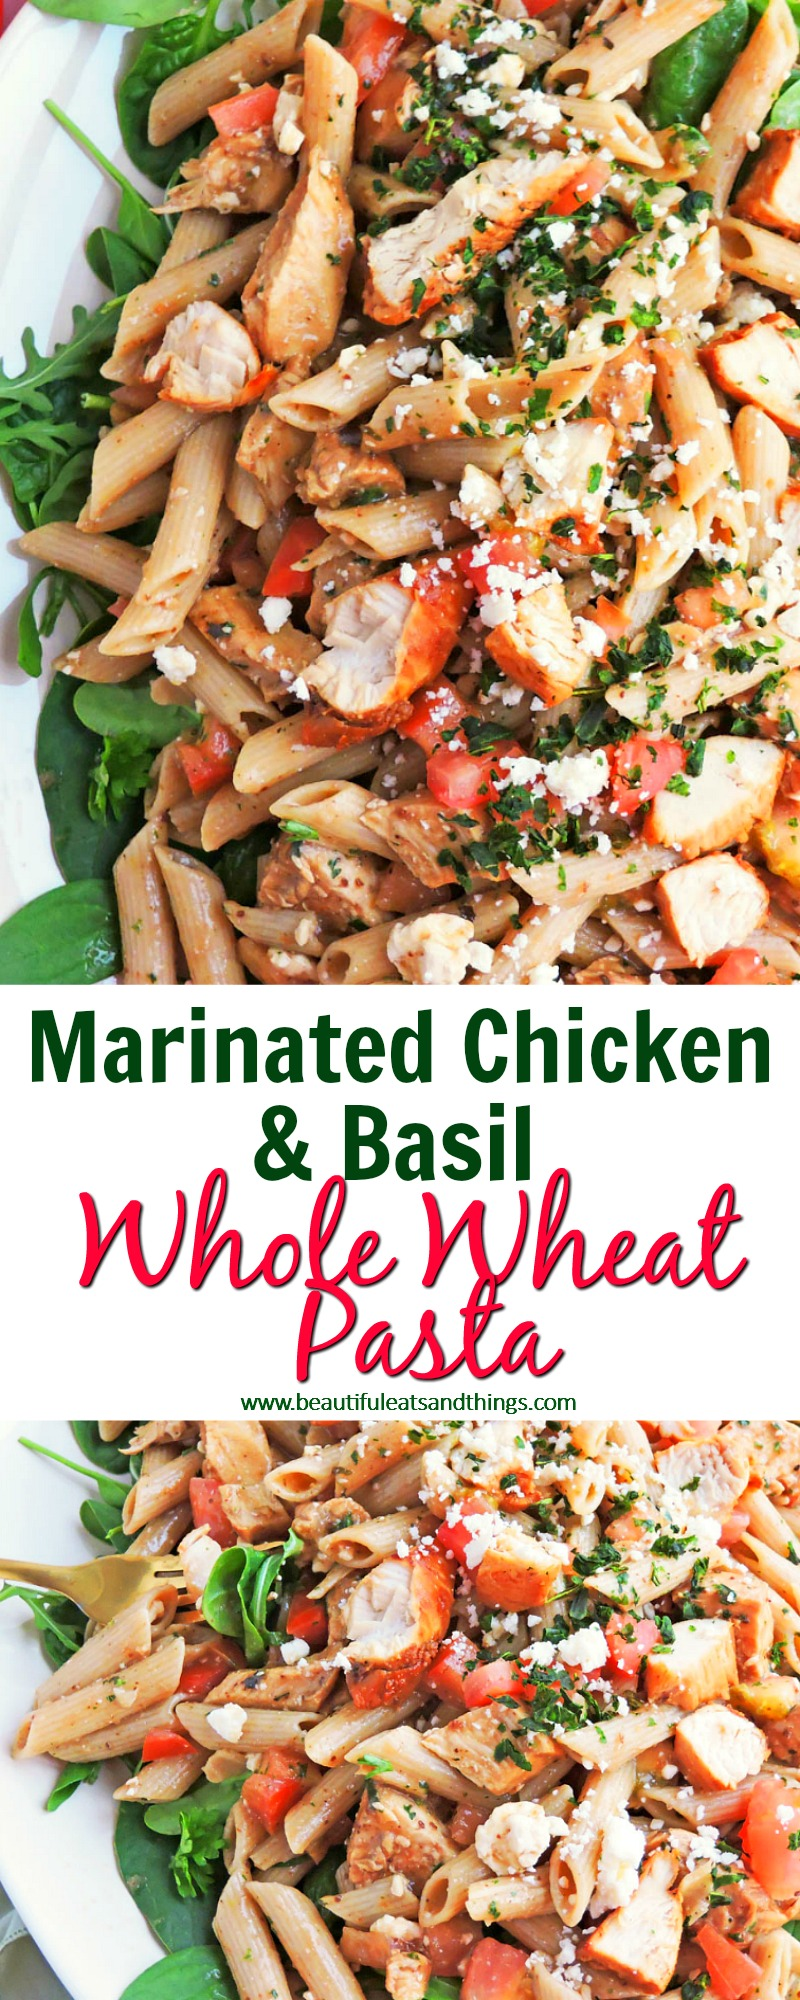 Marinated Chicken & Basil Whole Wheat Greek Pasta6